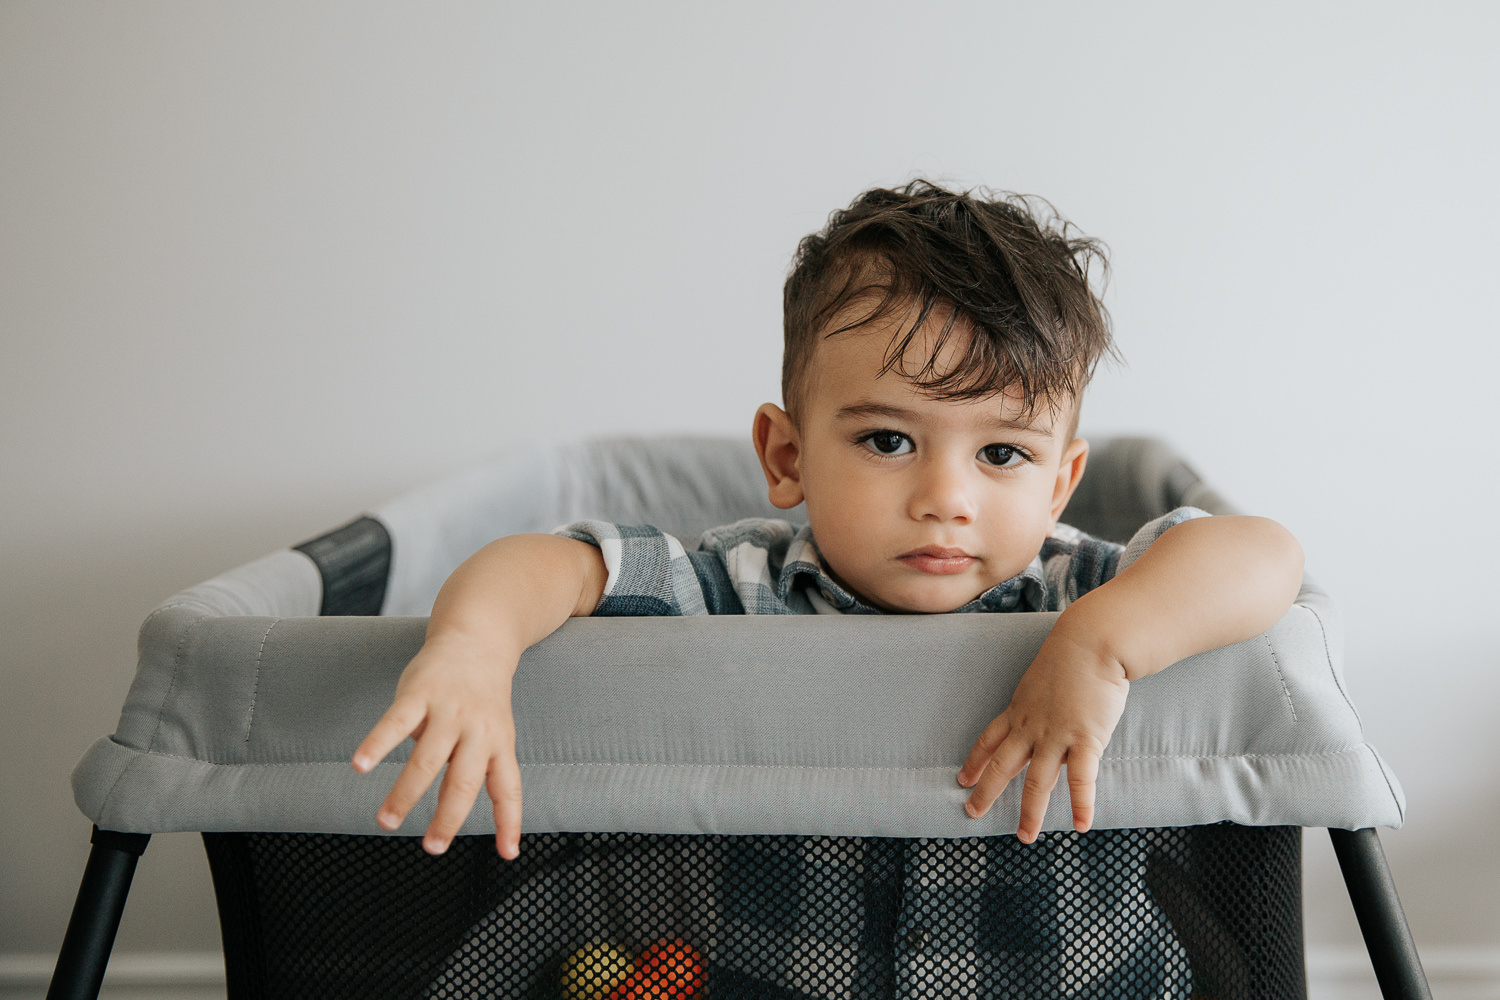 1 year old baby boy with dark hair and eyes in plaid blue and white button down shirt standing in playpen full of plastic balls looking seriously at camera - York Region In-Home Photography